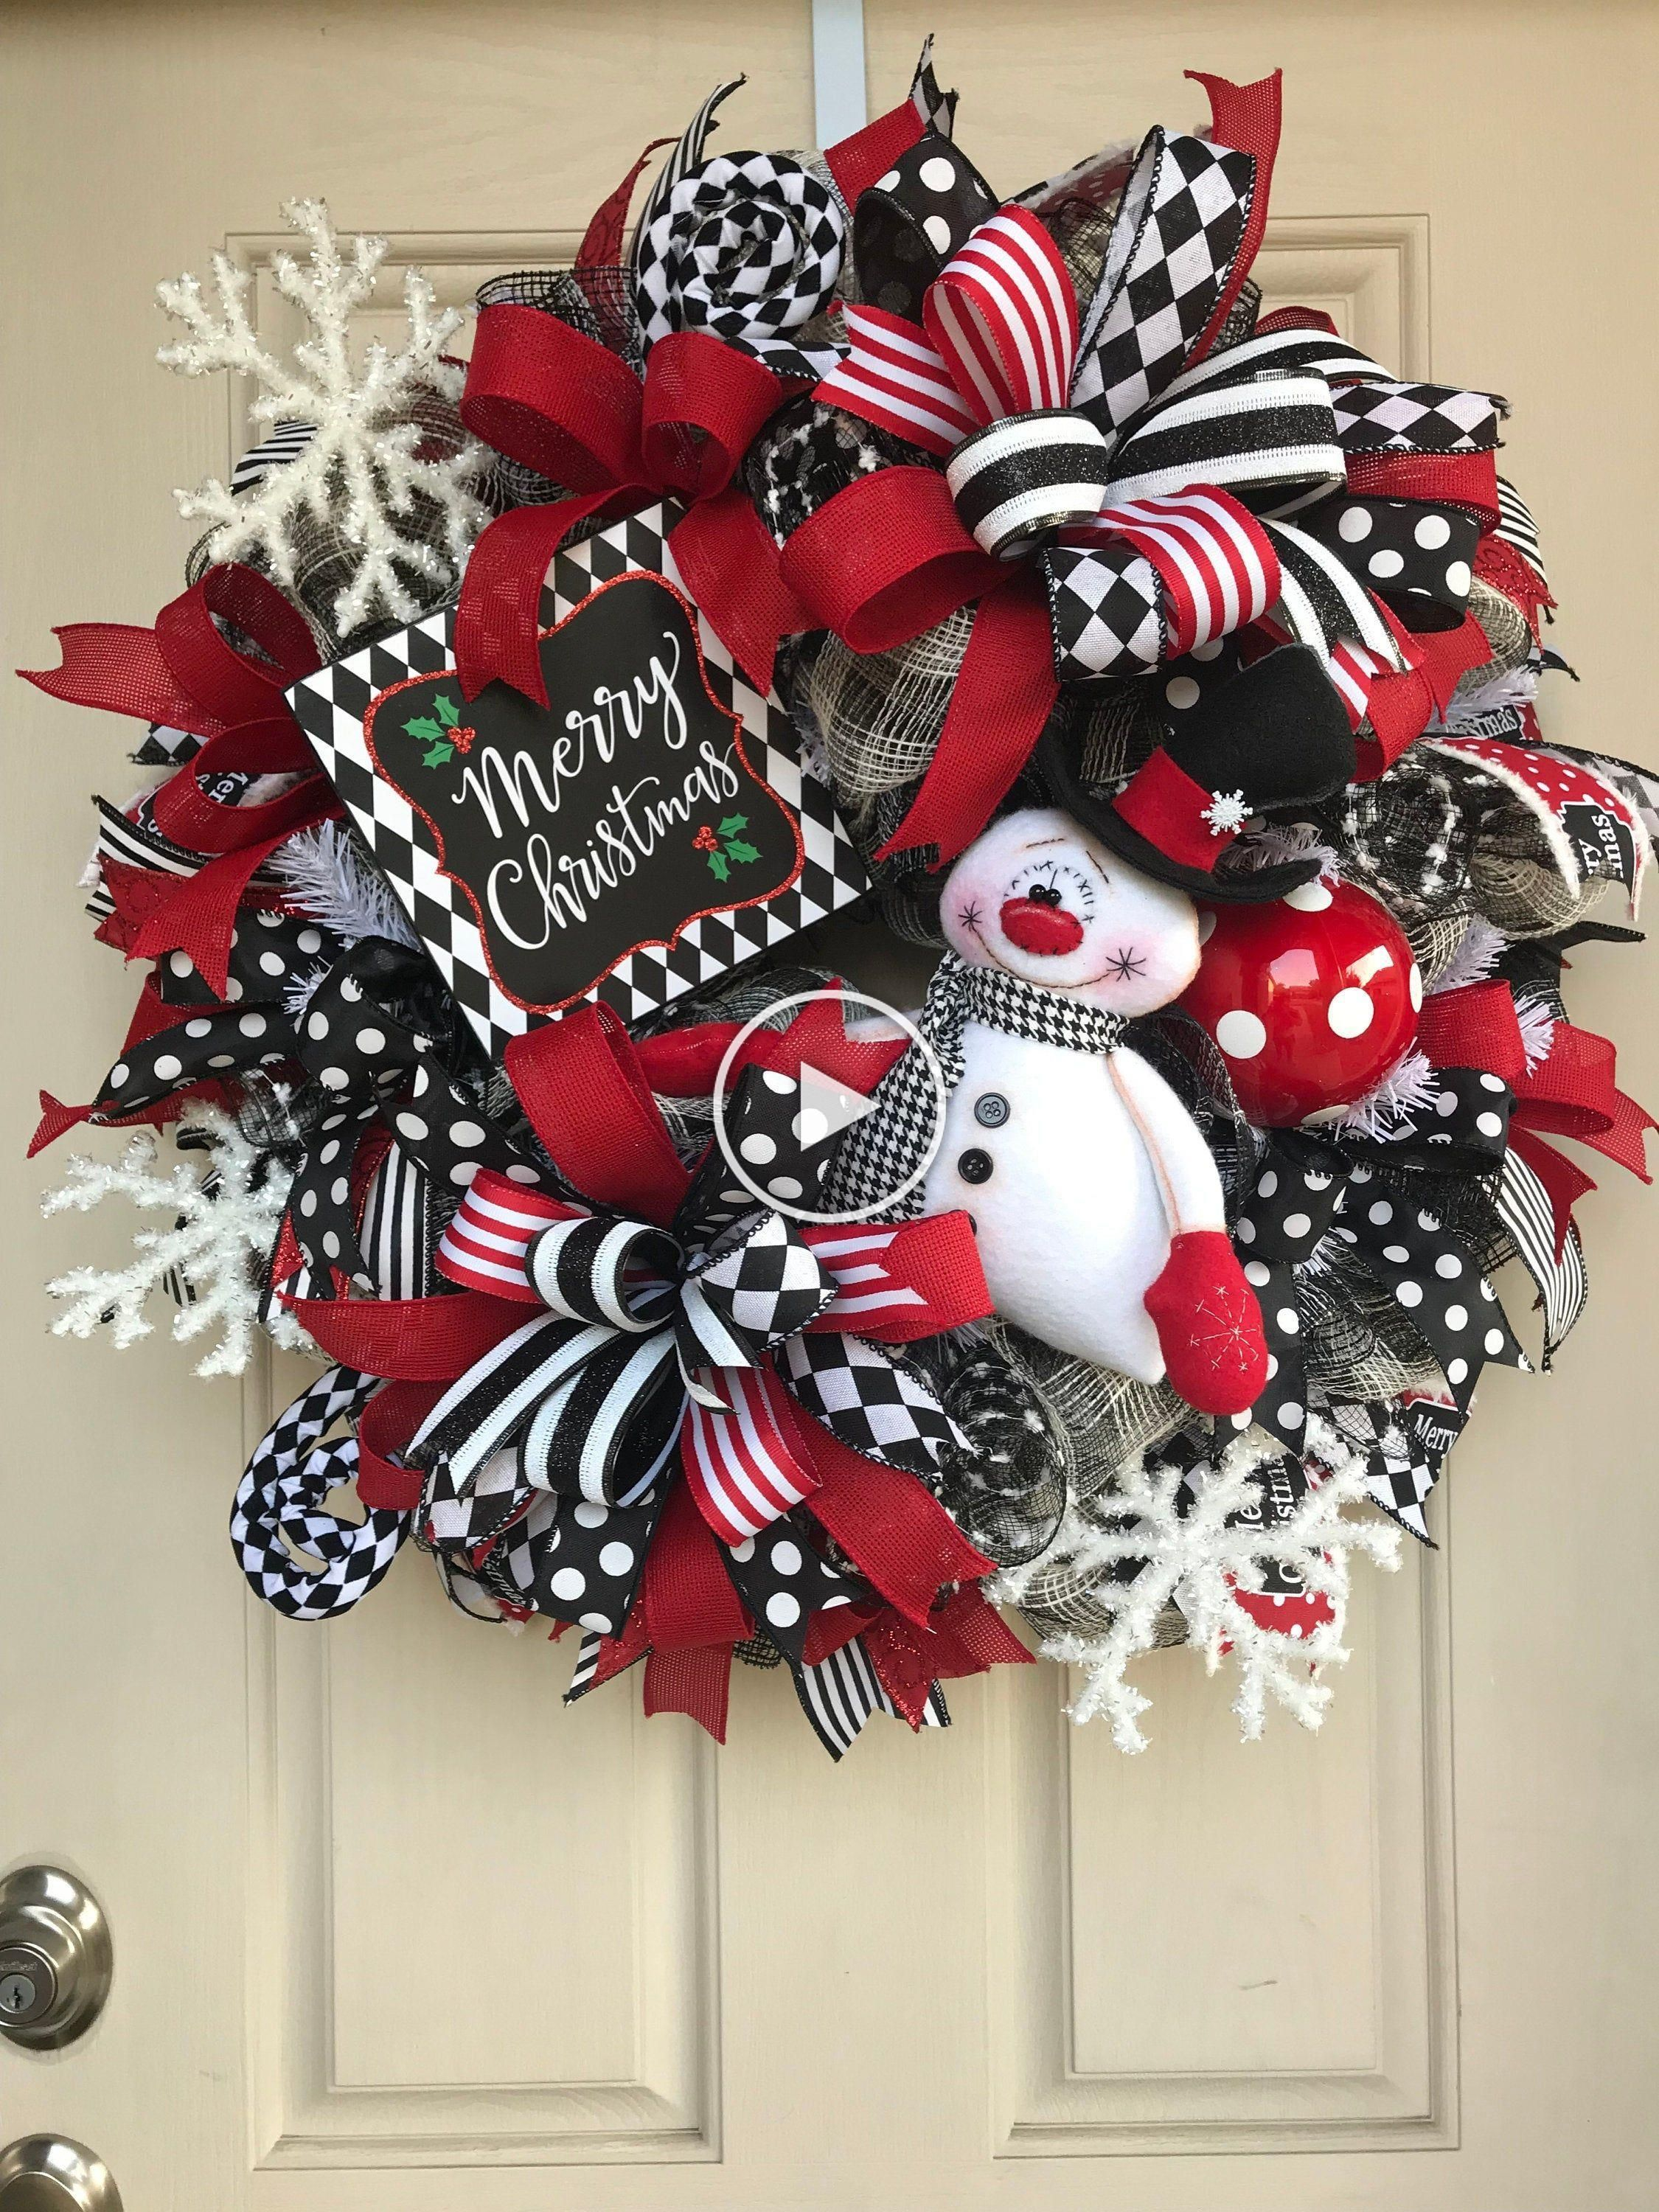 christmaswreaths in 2020 Christmas wreaths diy